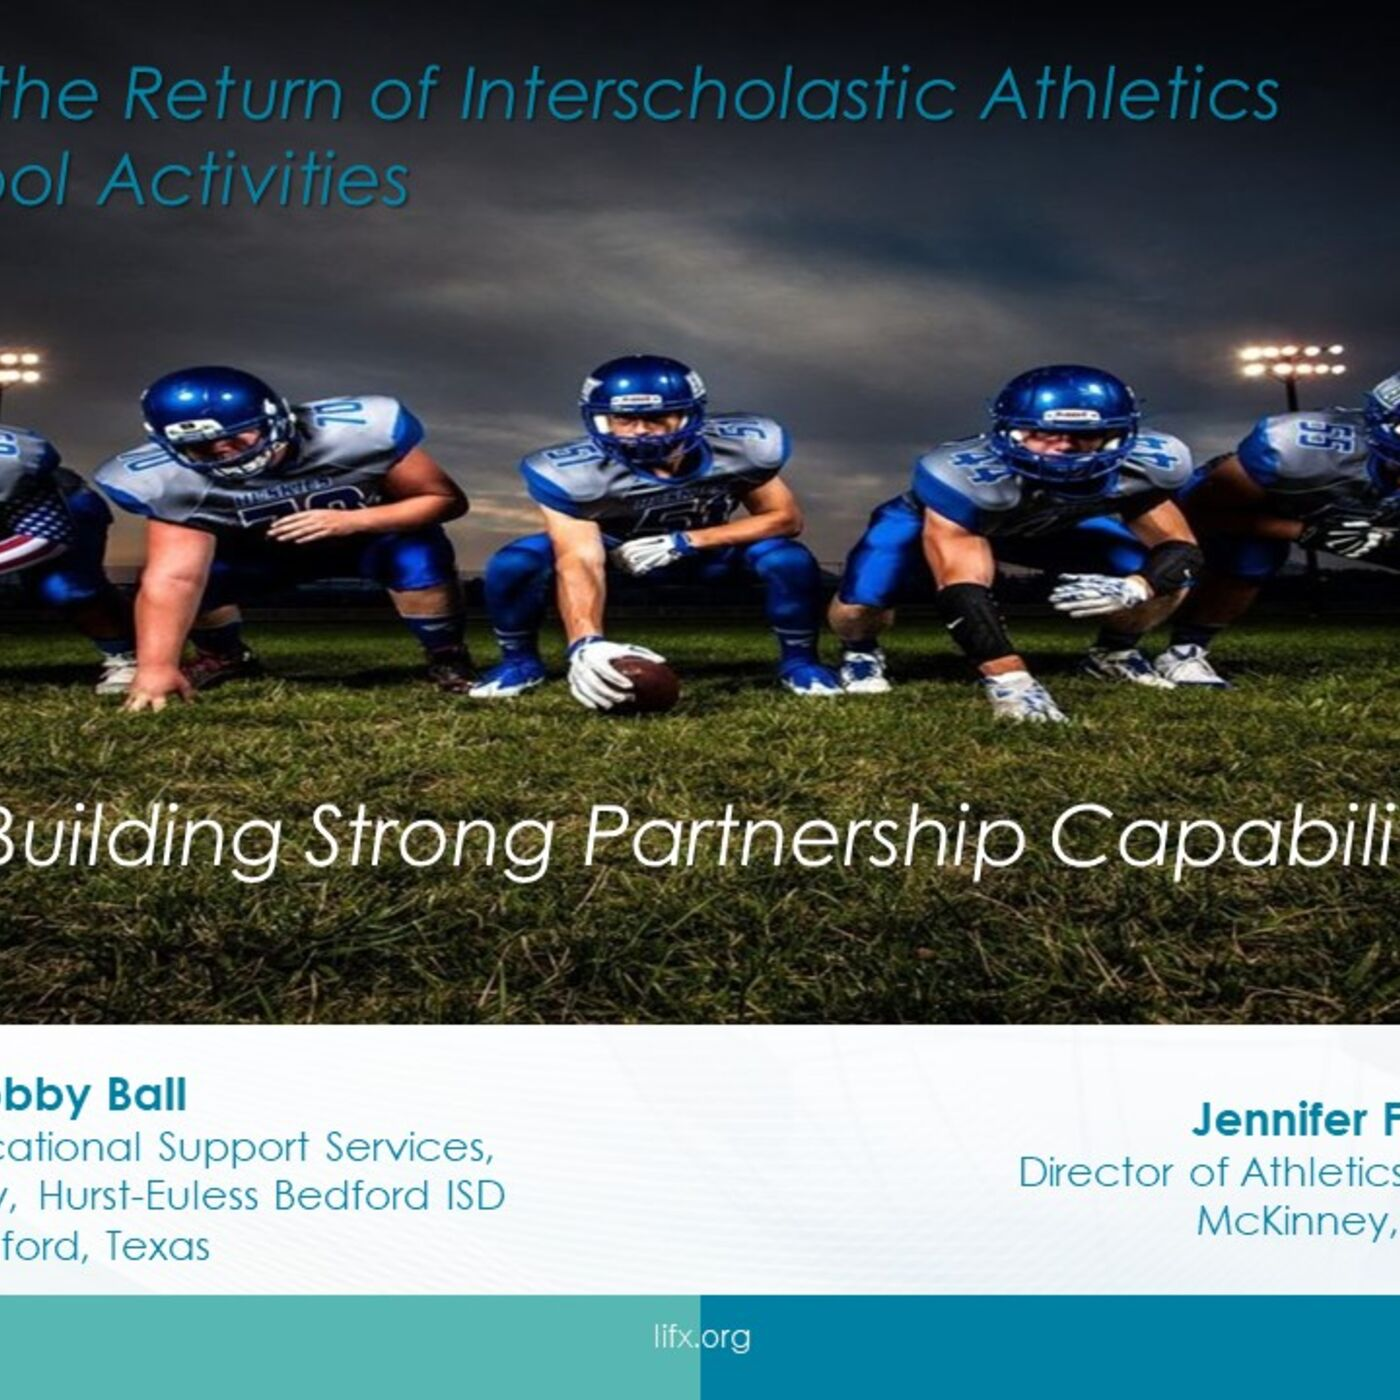 Session 5 - Building Strong Partnership Capabilities